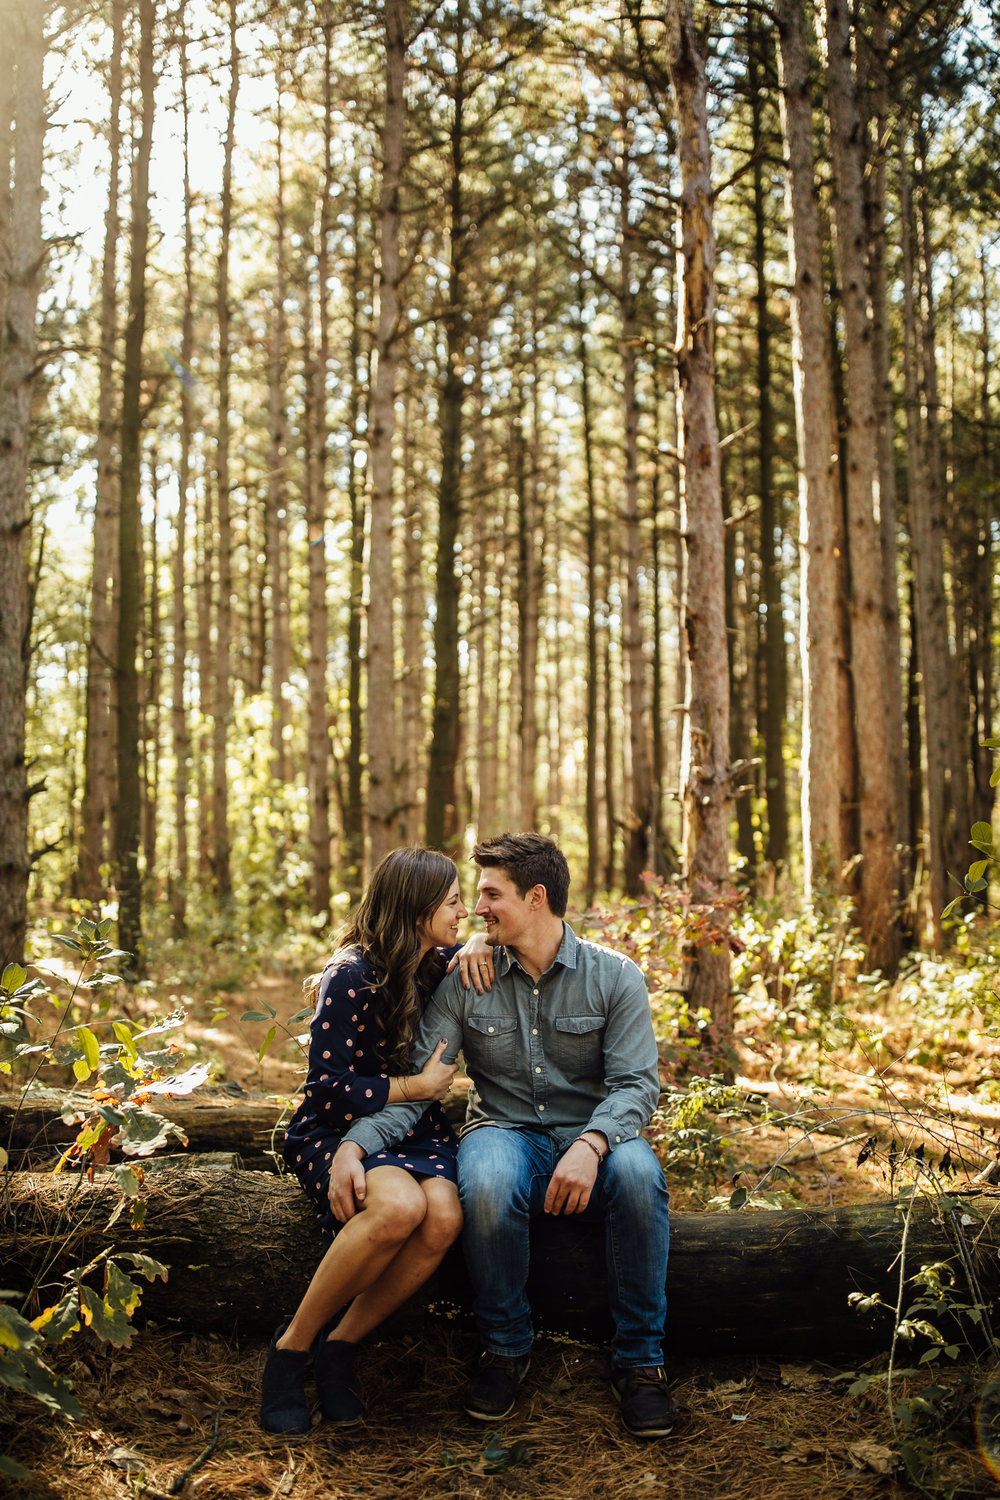 Rachel-Calvin-Grand-Rapids-Engagement-Michigan-Wedding-Photographer-292.jpg